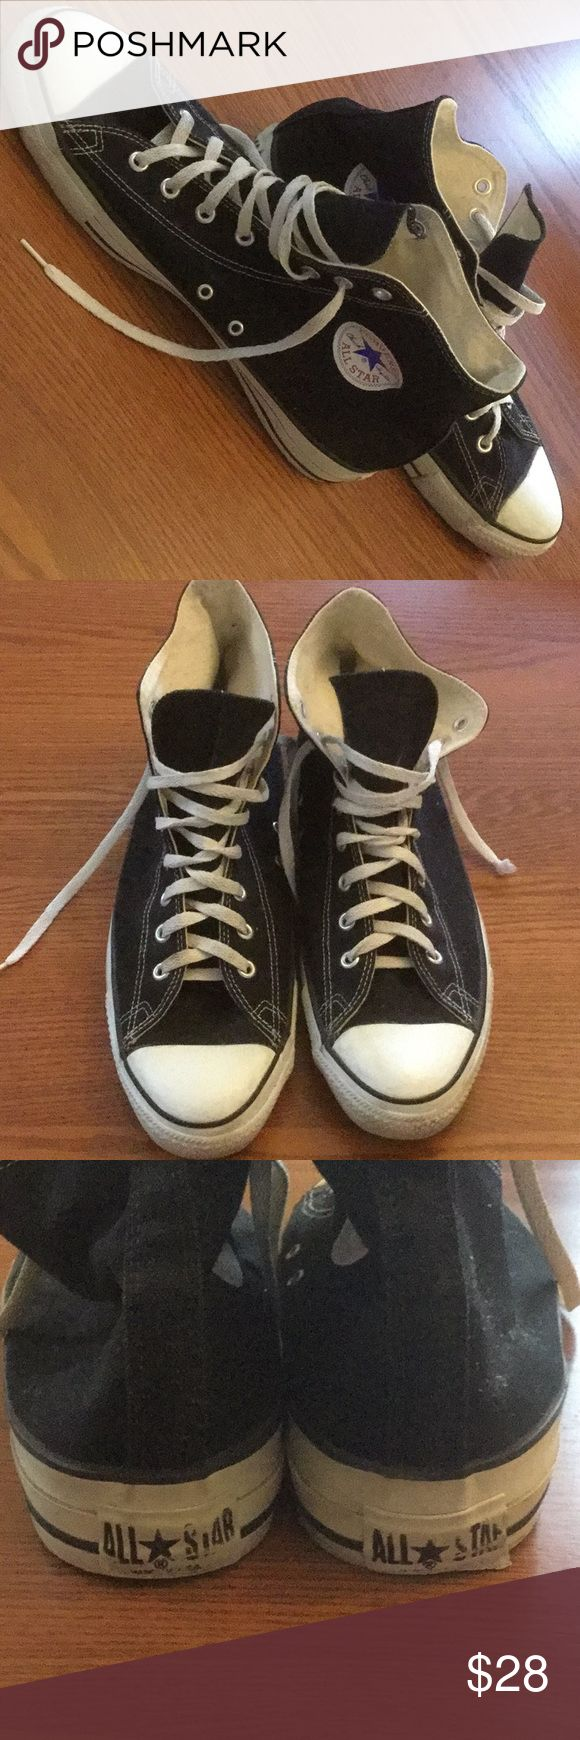 Men's Converse high tops Black Converse high tops in good used shape!… not worn much. The most wear is seen on the Converse name at the back and minor cracks at the toe. Also one shoe string tip is missing. Otherwise they look like new shoes Converse Shoes Sneakers